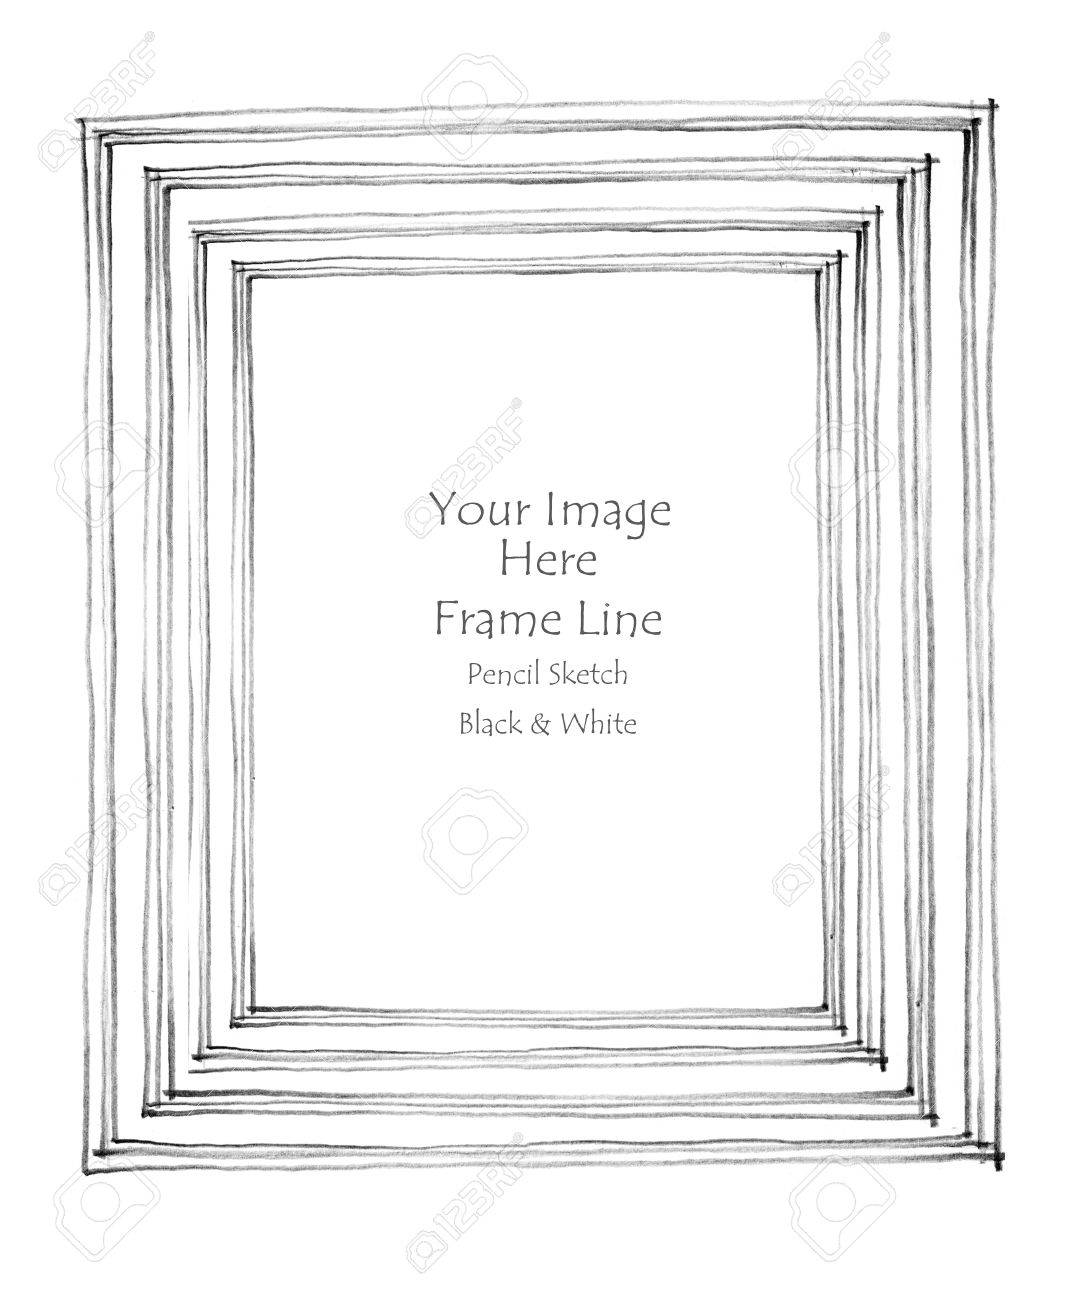 Black and white pencil sketch line frame by hand from my imagination